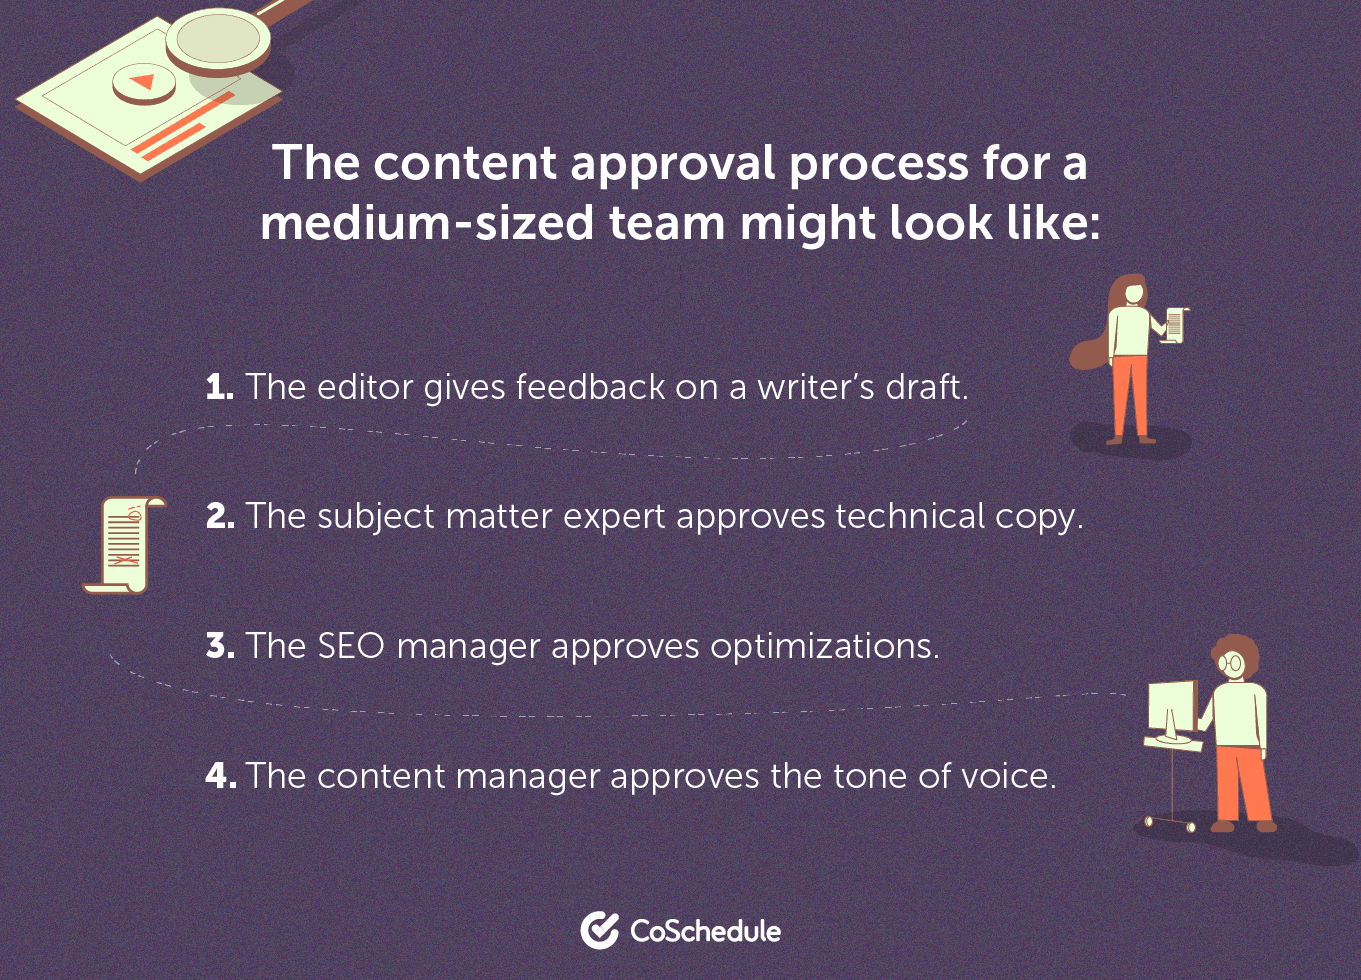 Content approval process for teams